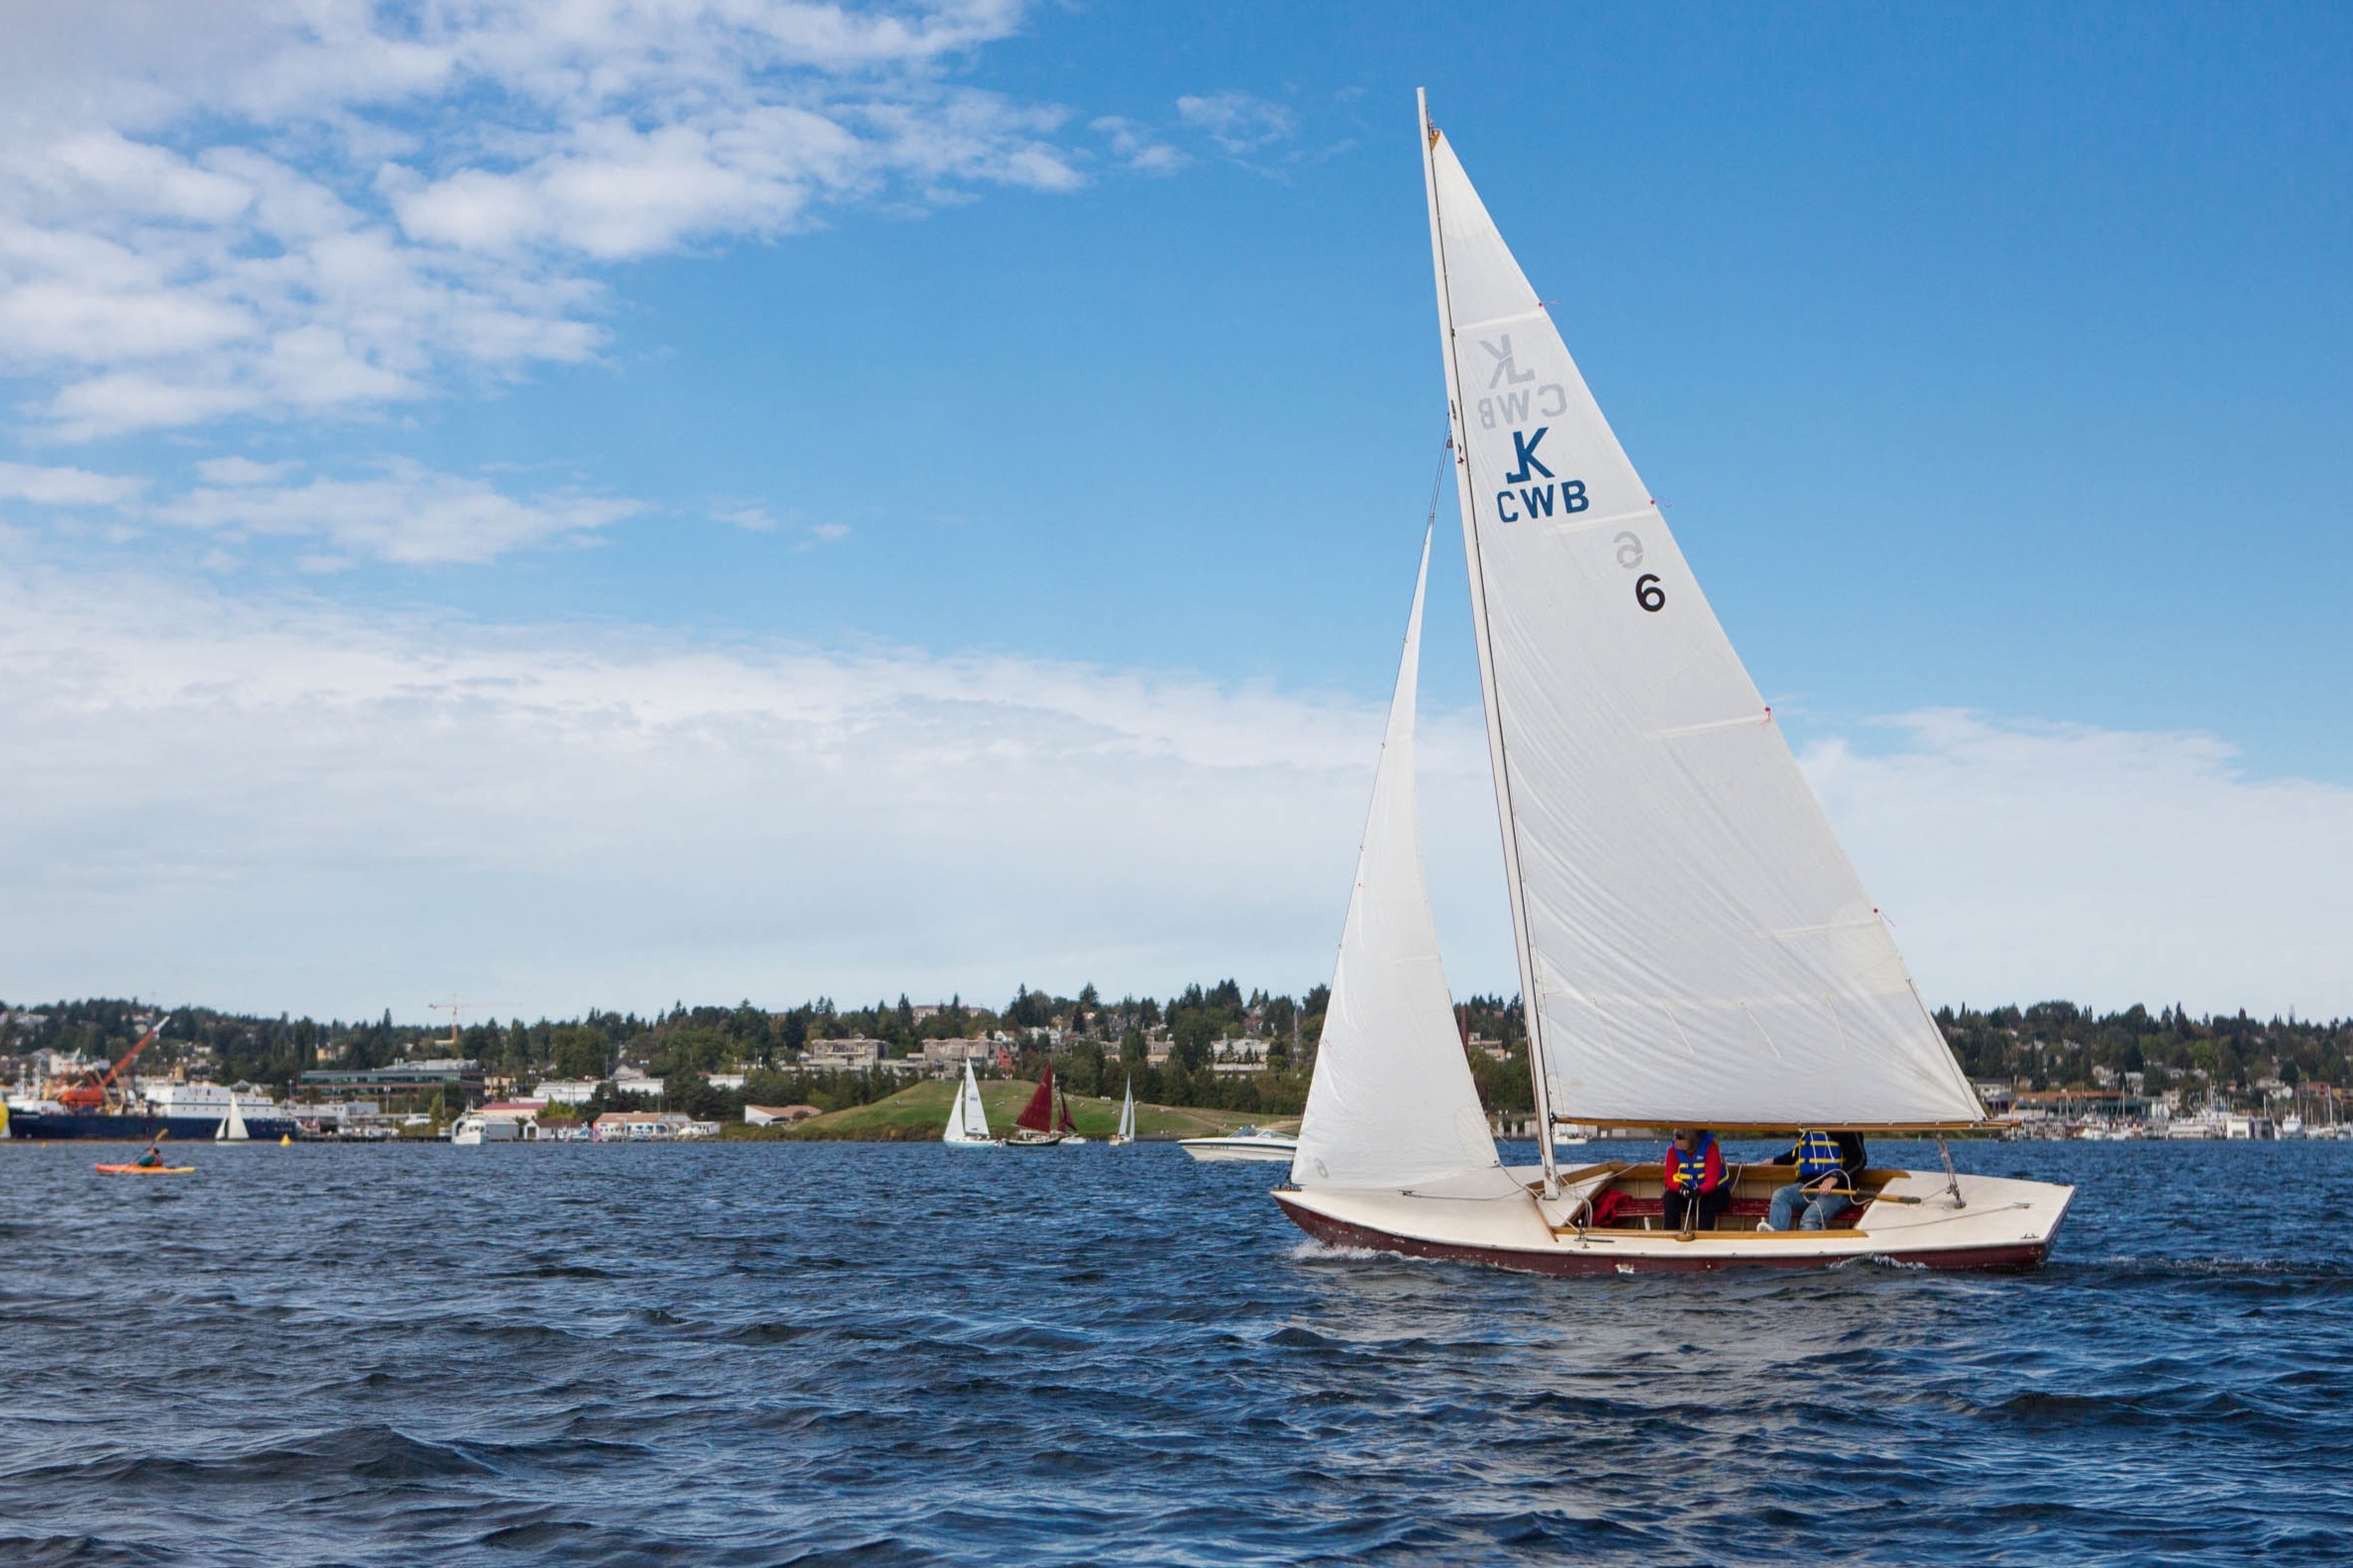 Free Programs — The Center for Wooden Boats